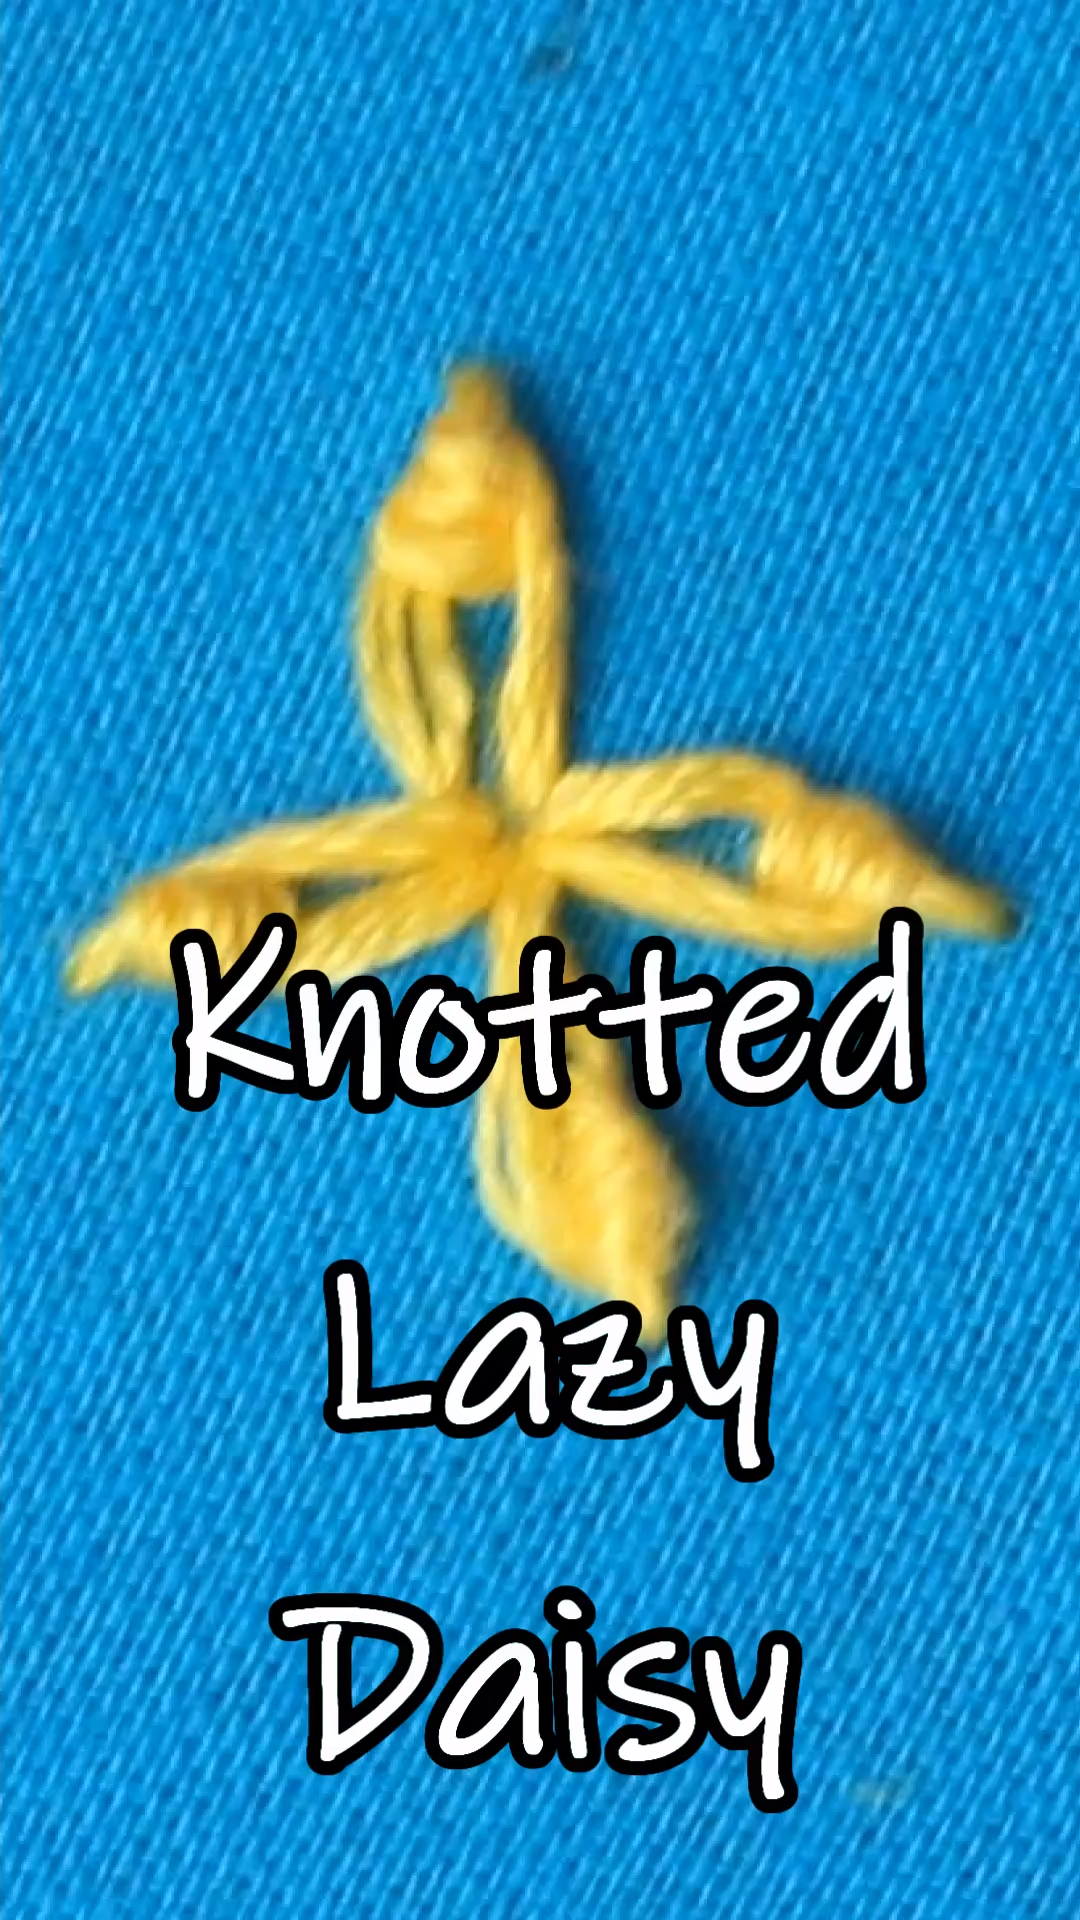 Photo of Knotted Lazy Daisy #embroidery